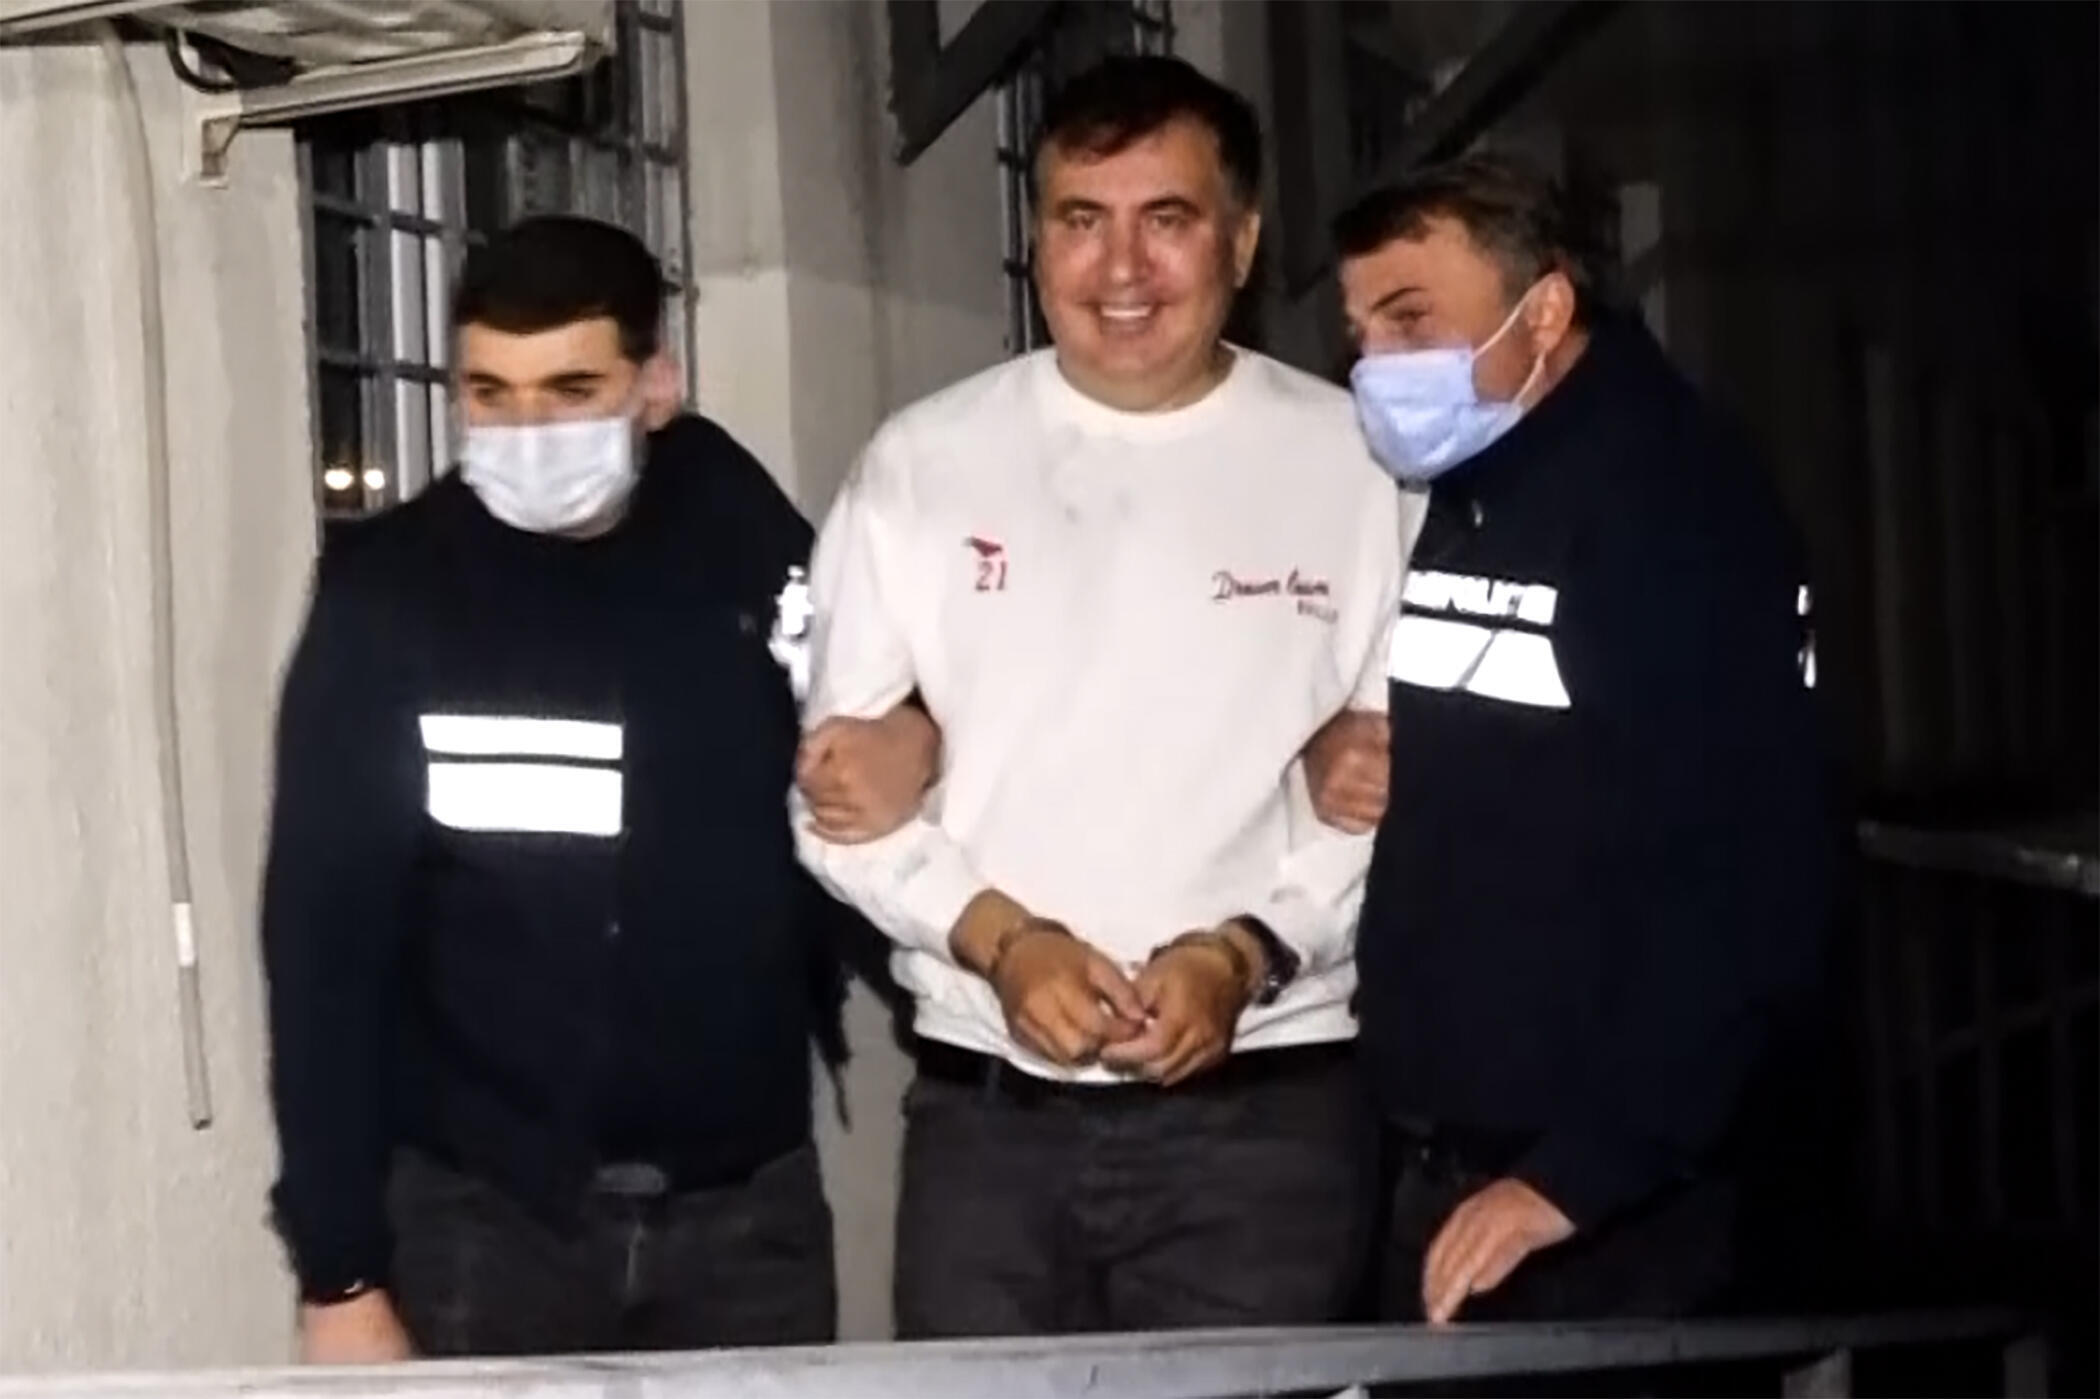 Saakashvili's jailing will almost certainly spark upheaval in the small ex-Soviet nation that has been plagued for years by political instability